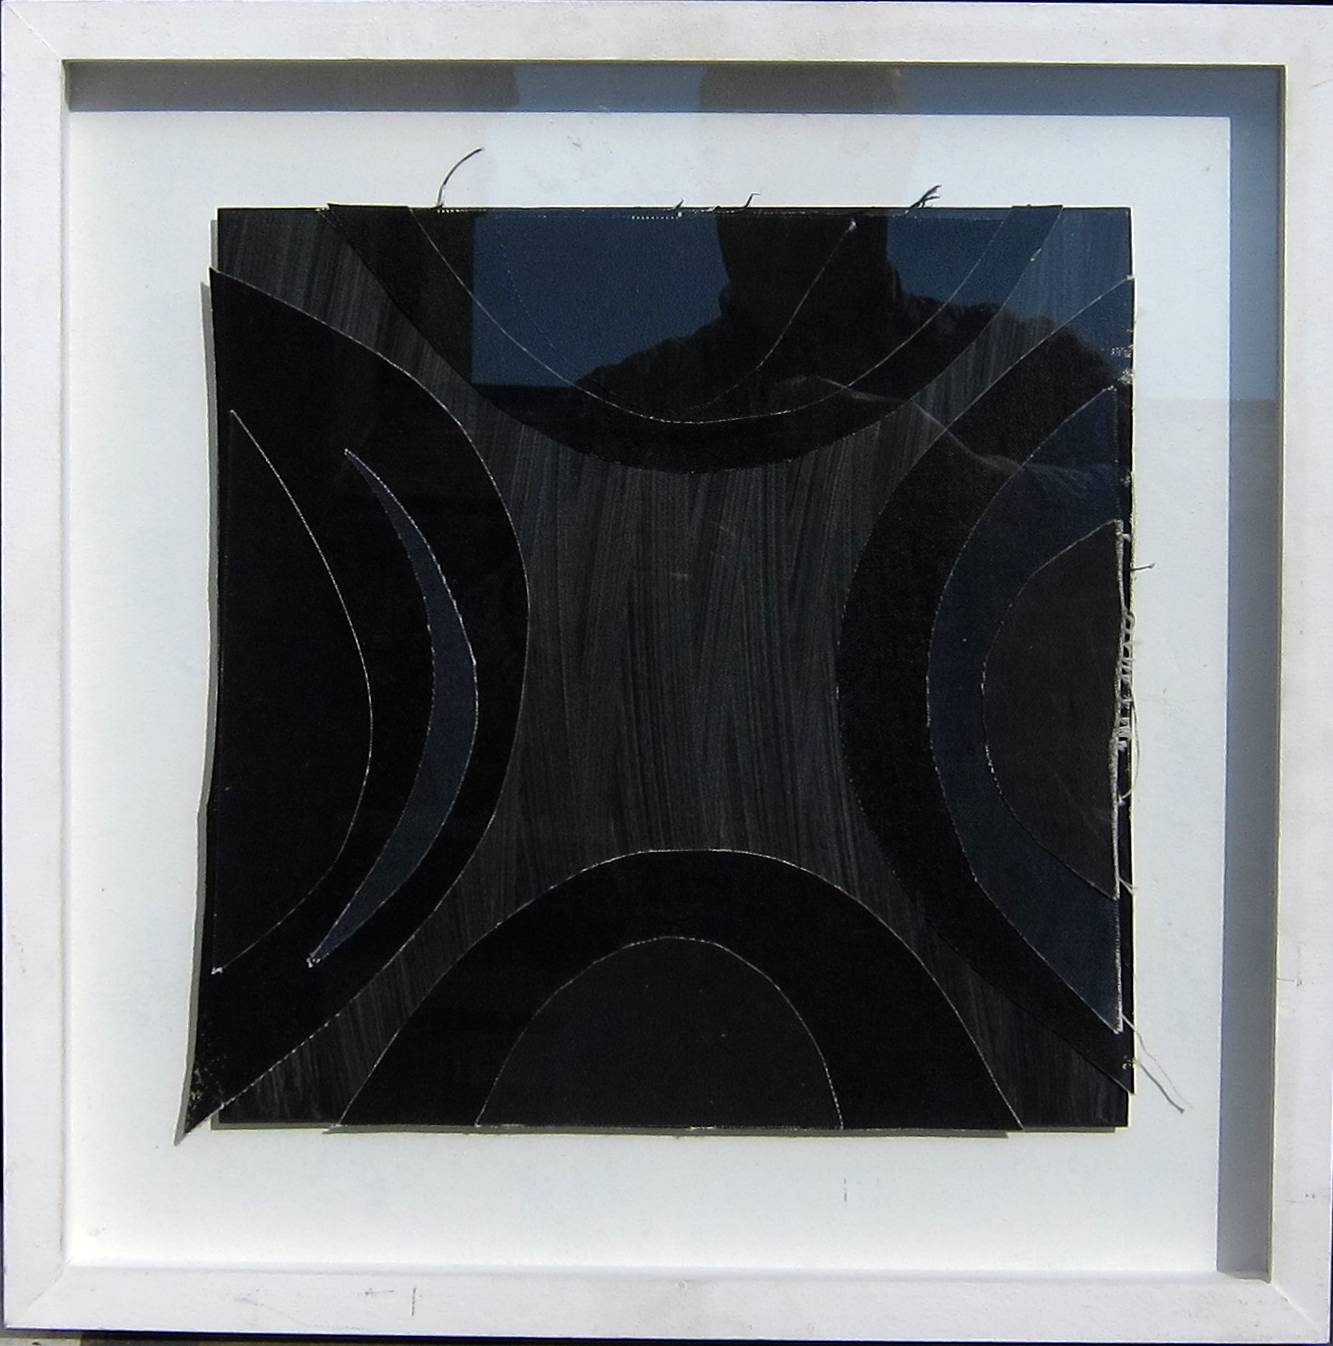 Lot 41 - TERRY FROST, R.A. [1915-2003]. Blacks Acrylic on canvas collage on board. Studio stamp signature